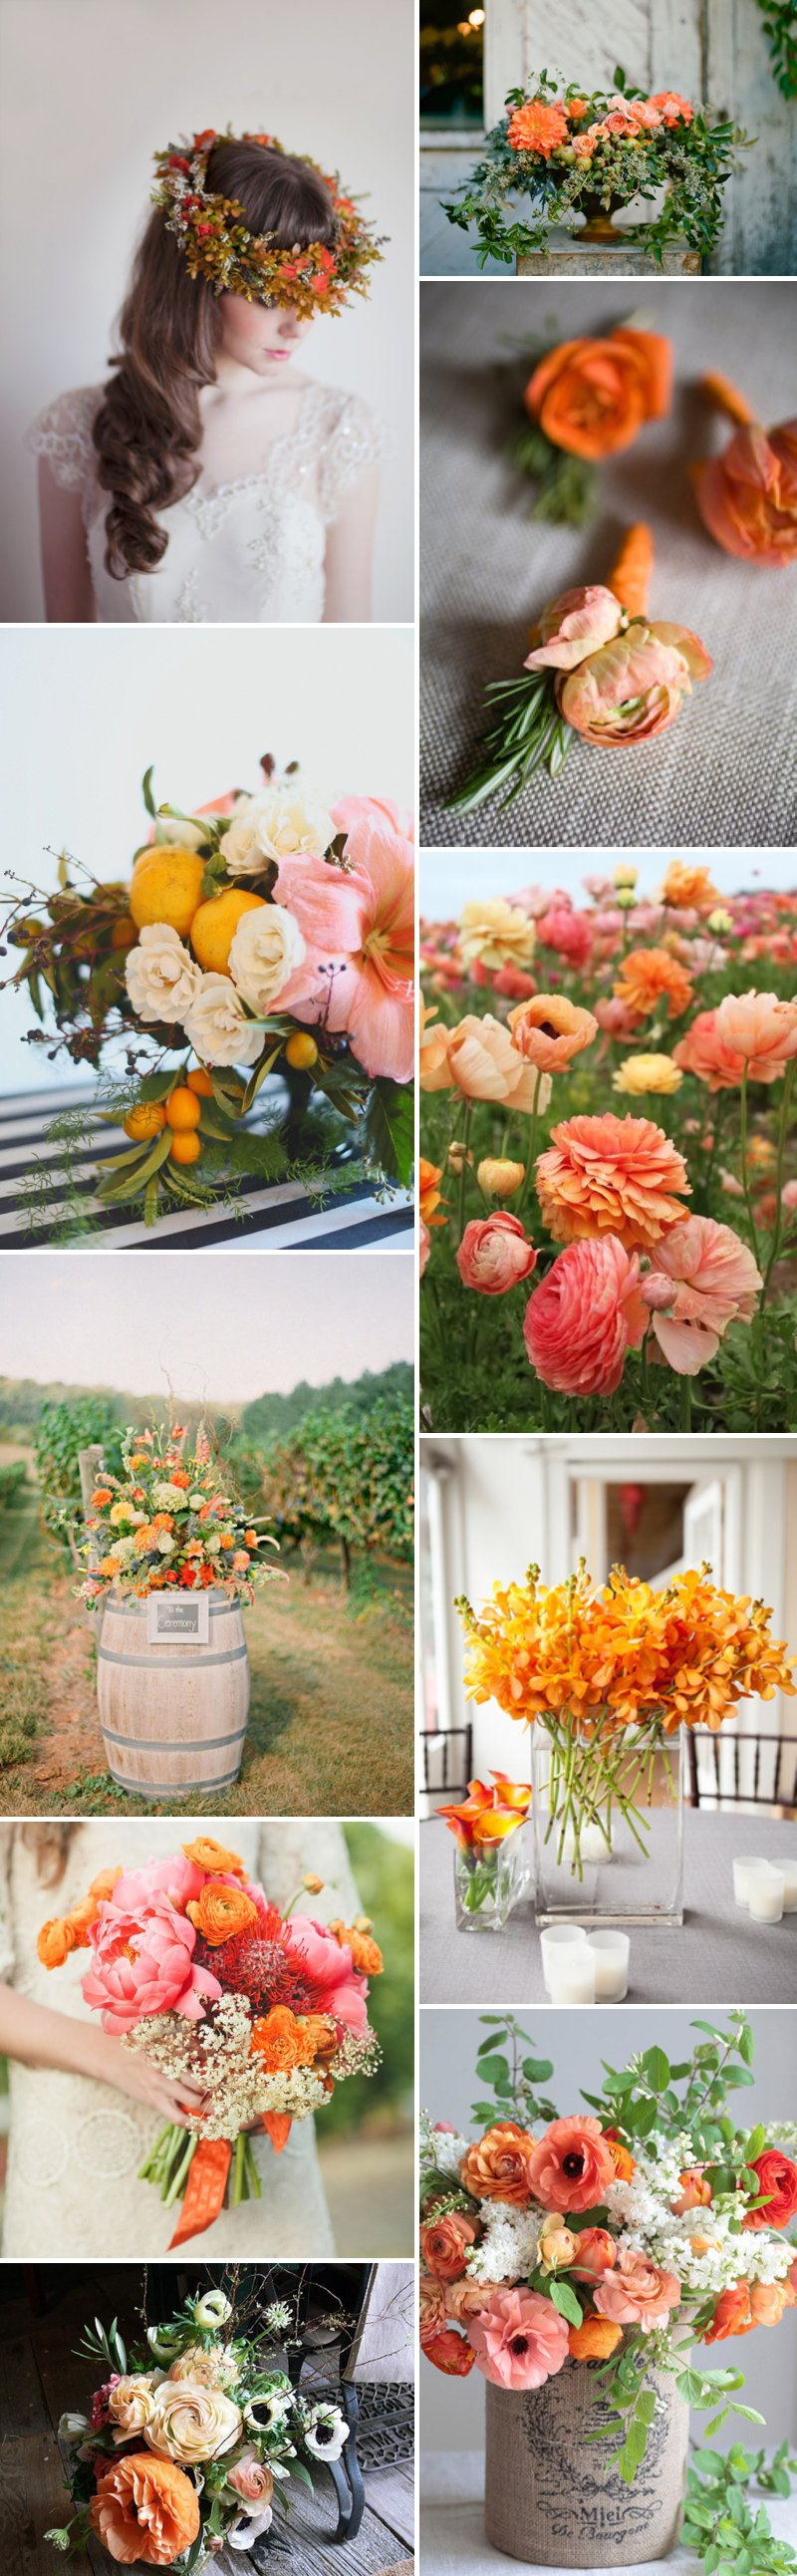 Orange Peach Tangerine Wedding Flowers Fleurs Bouquet